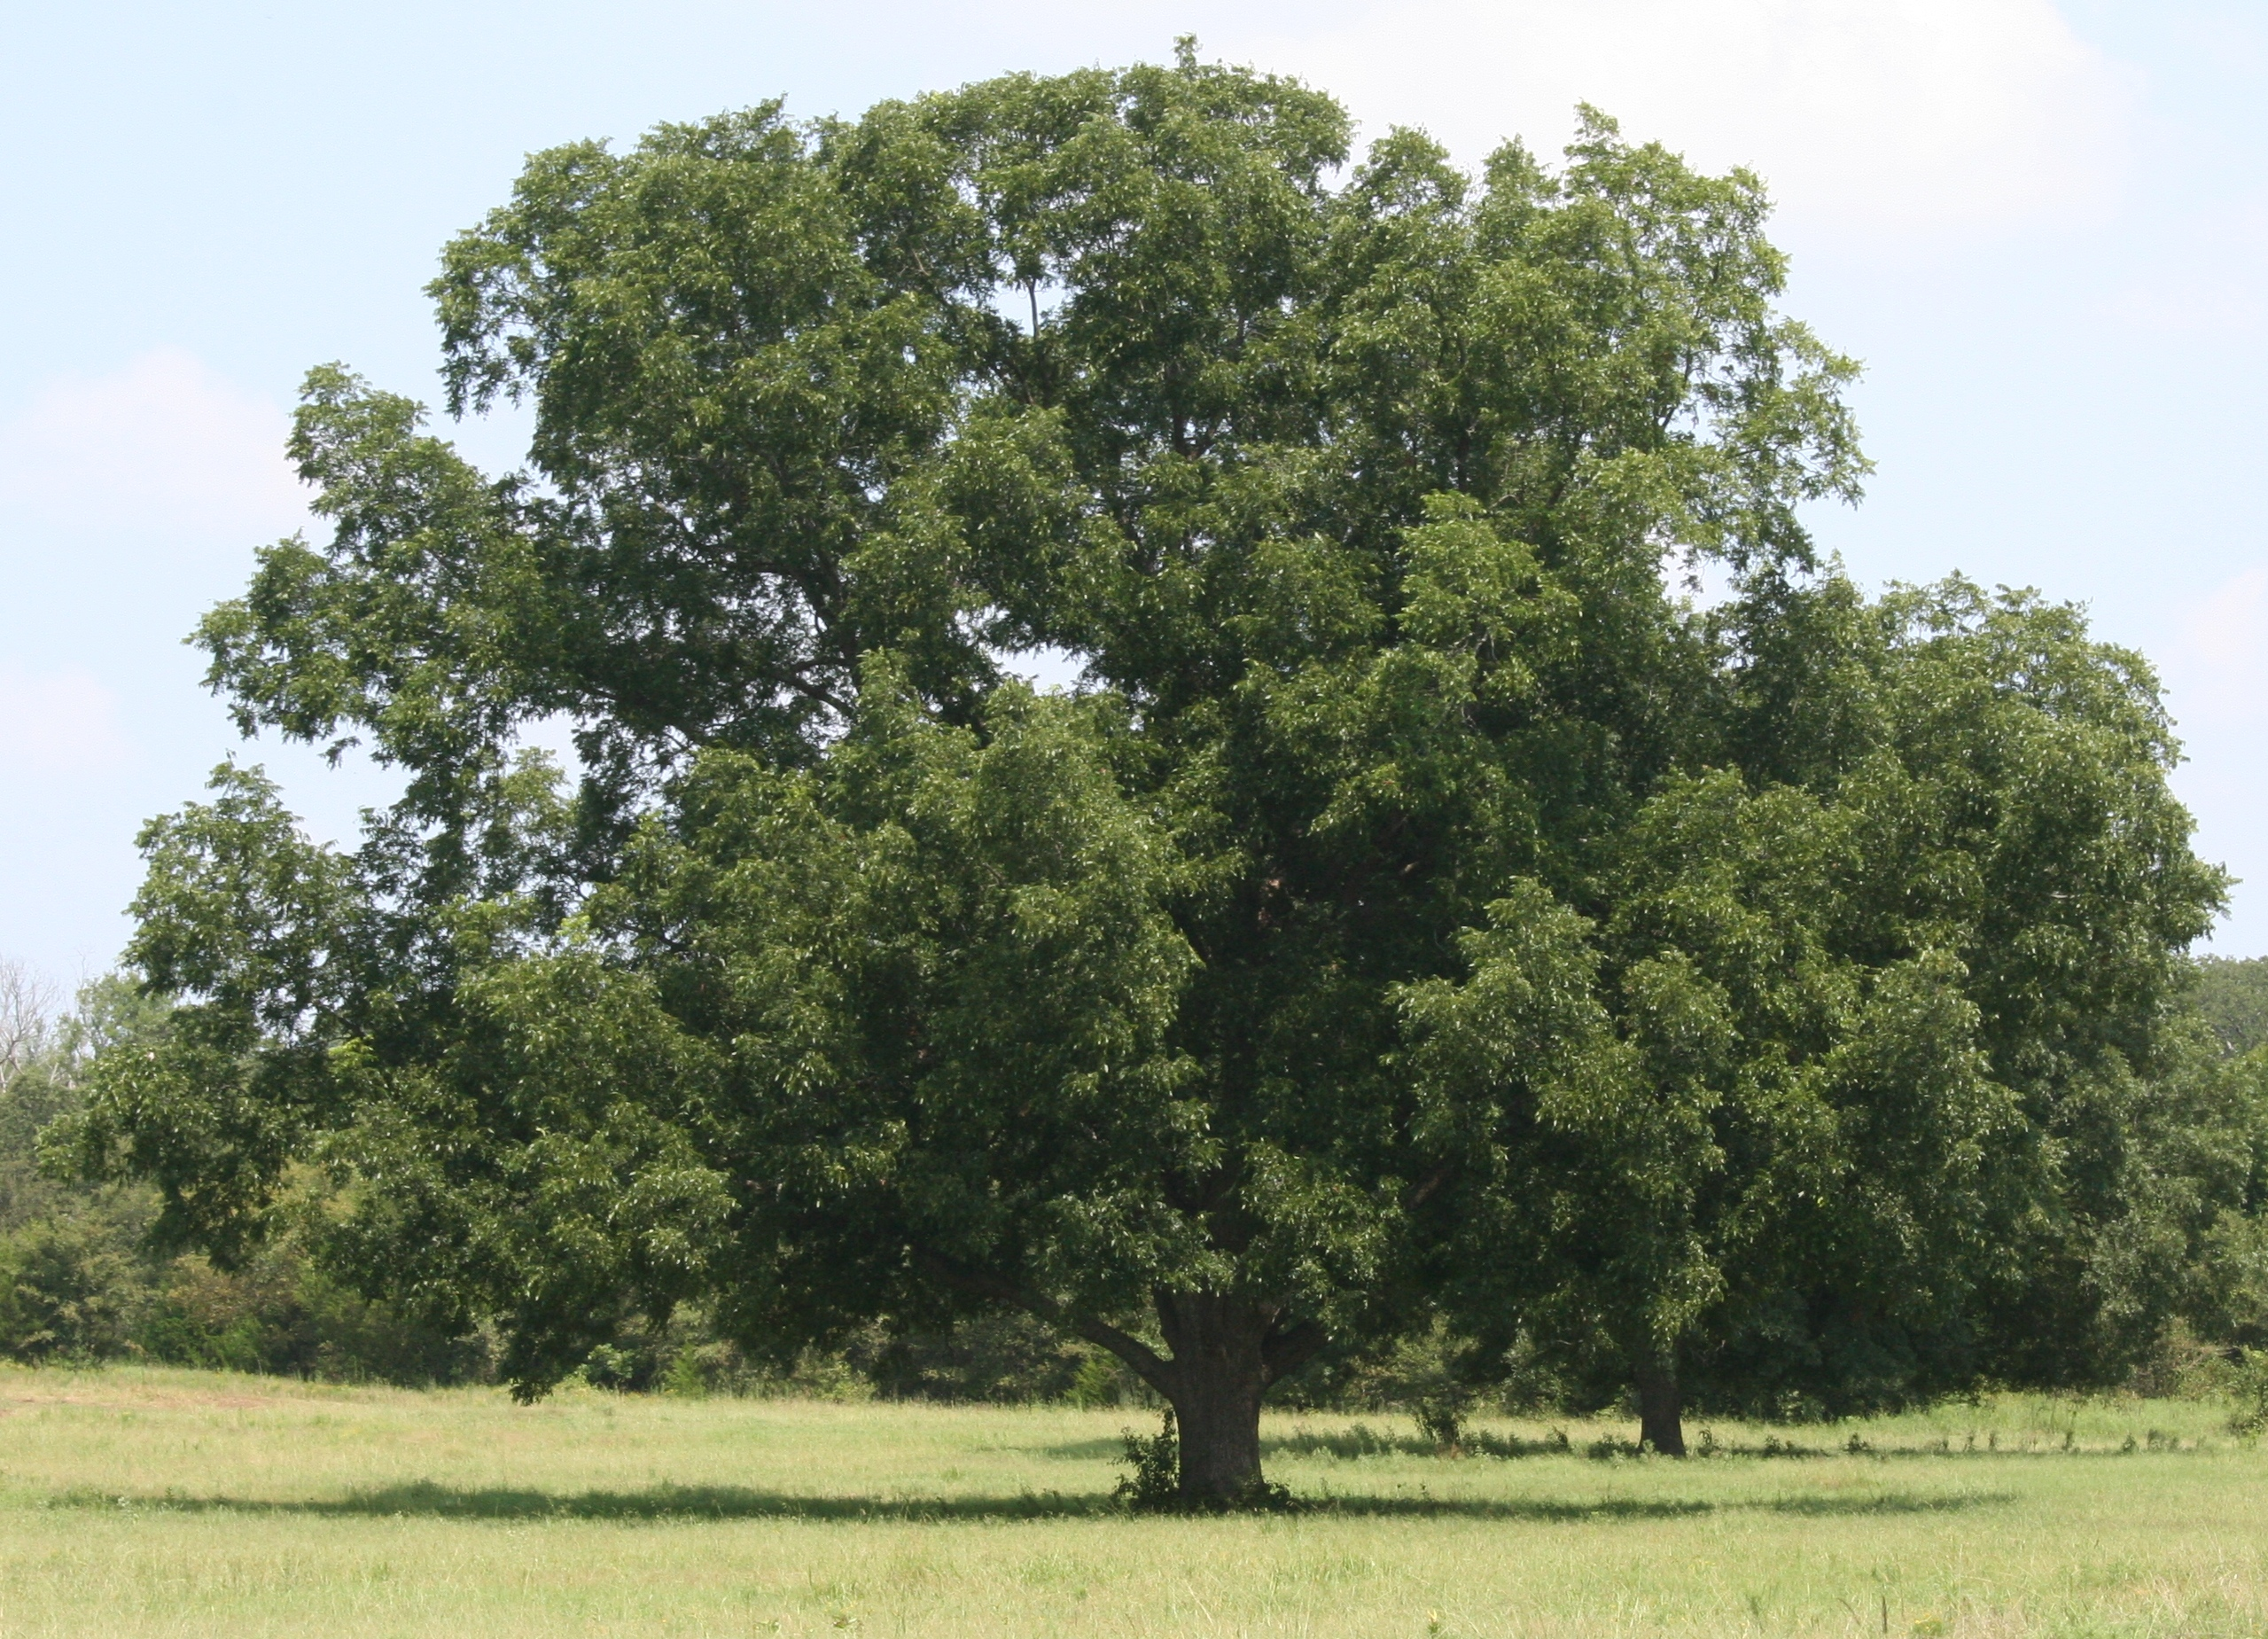 A native pecan tree grows tall in an Oklahoma grove.